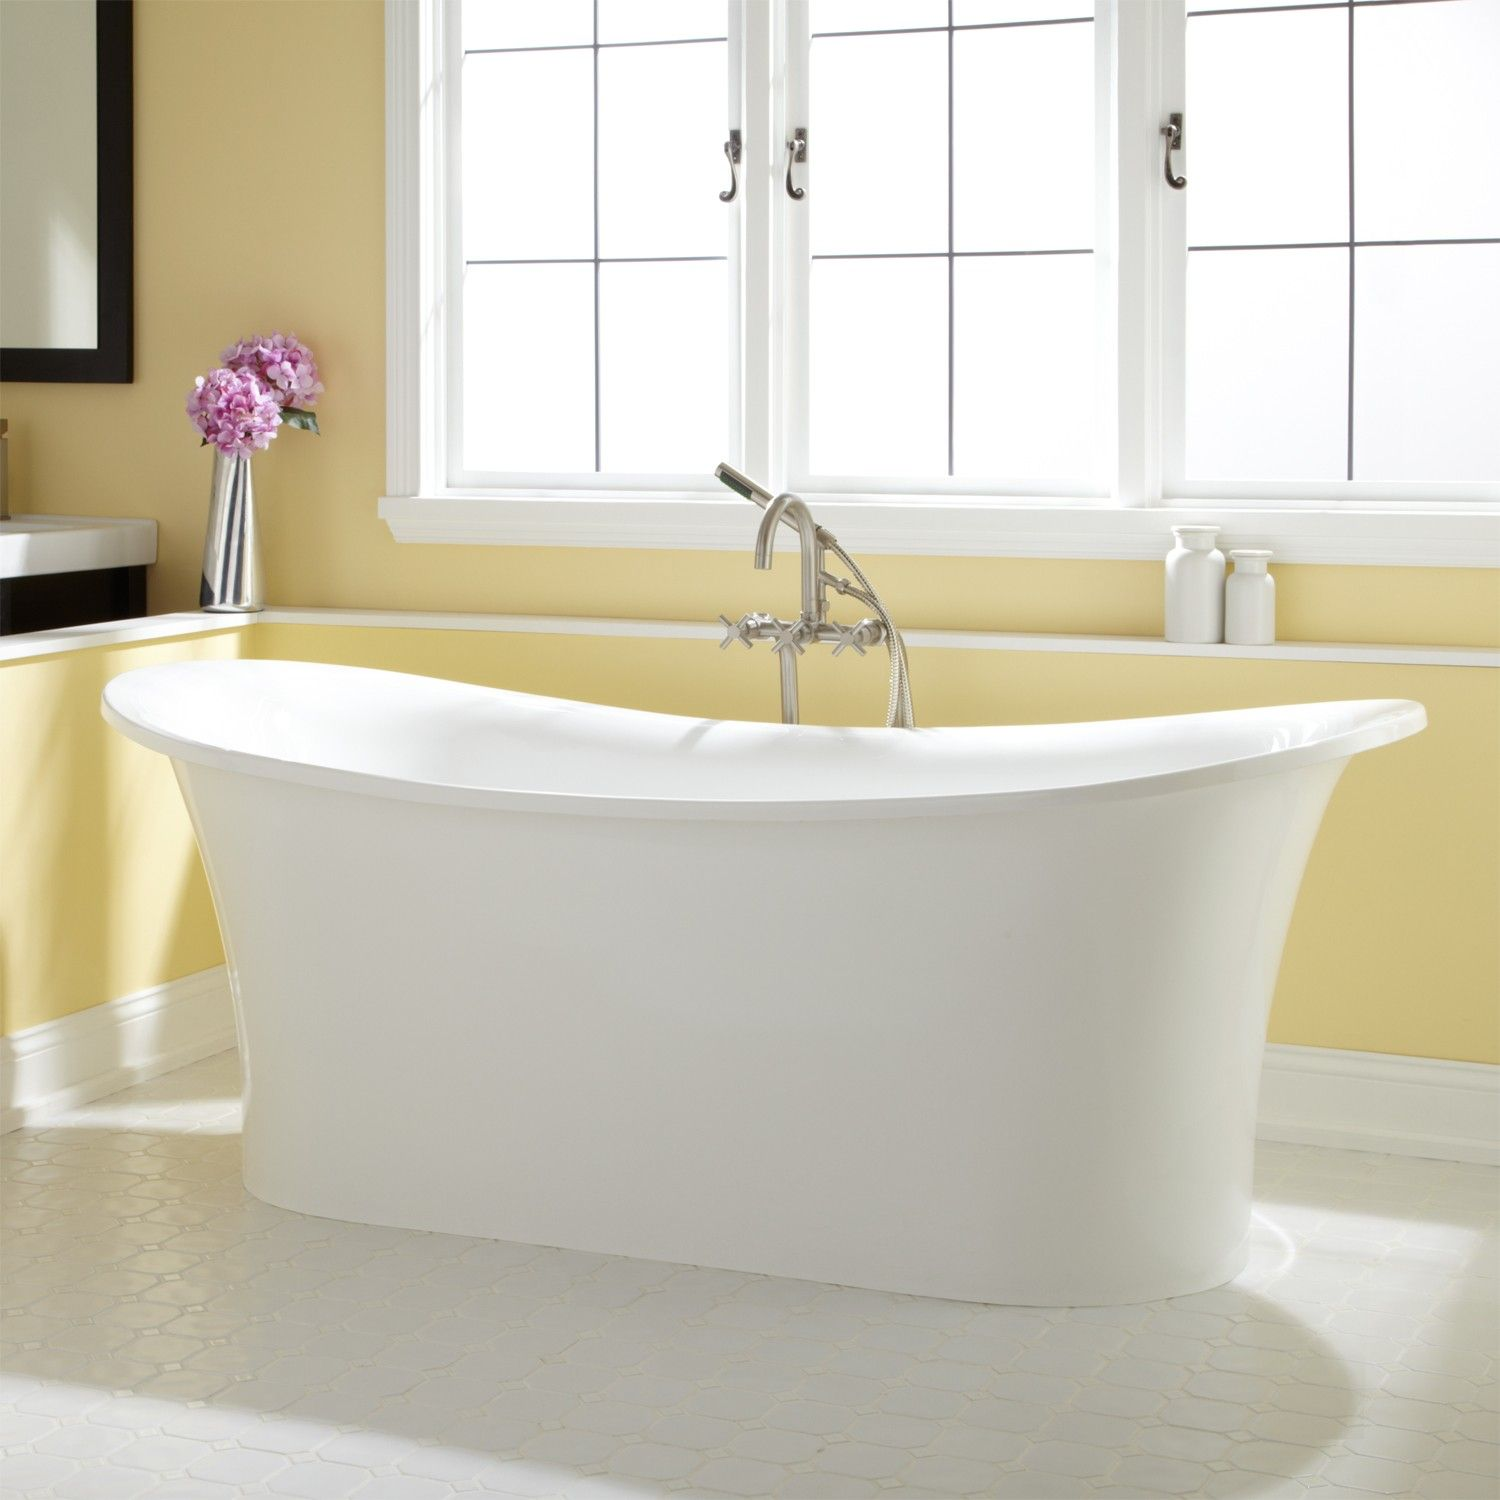 ... Acrylic Tub   Acrylic Tubs   Bathtubs   Bathroom  Http://www.signaturehardware.com/bathroom/bathtubs/acrylic Tubs /72 Shai Freestanding Acrylic Tub.html